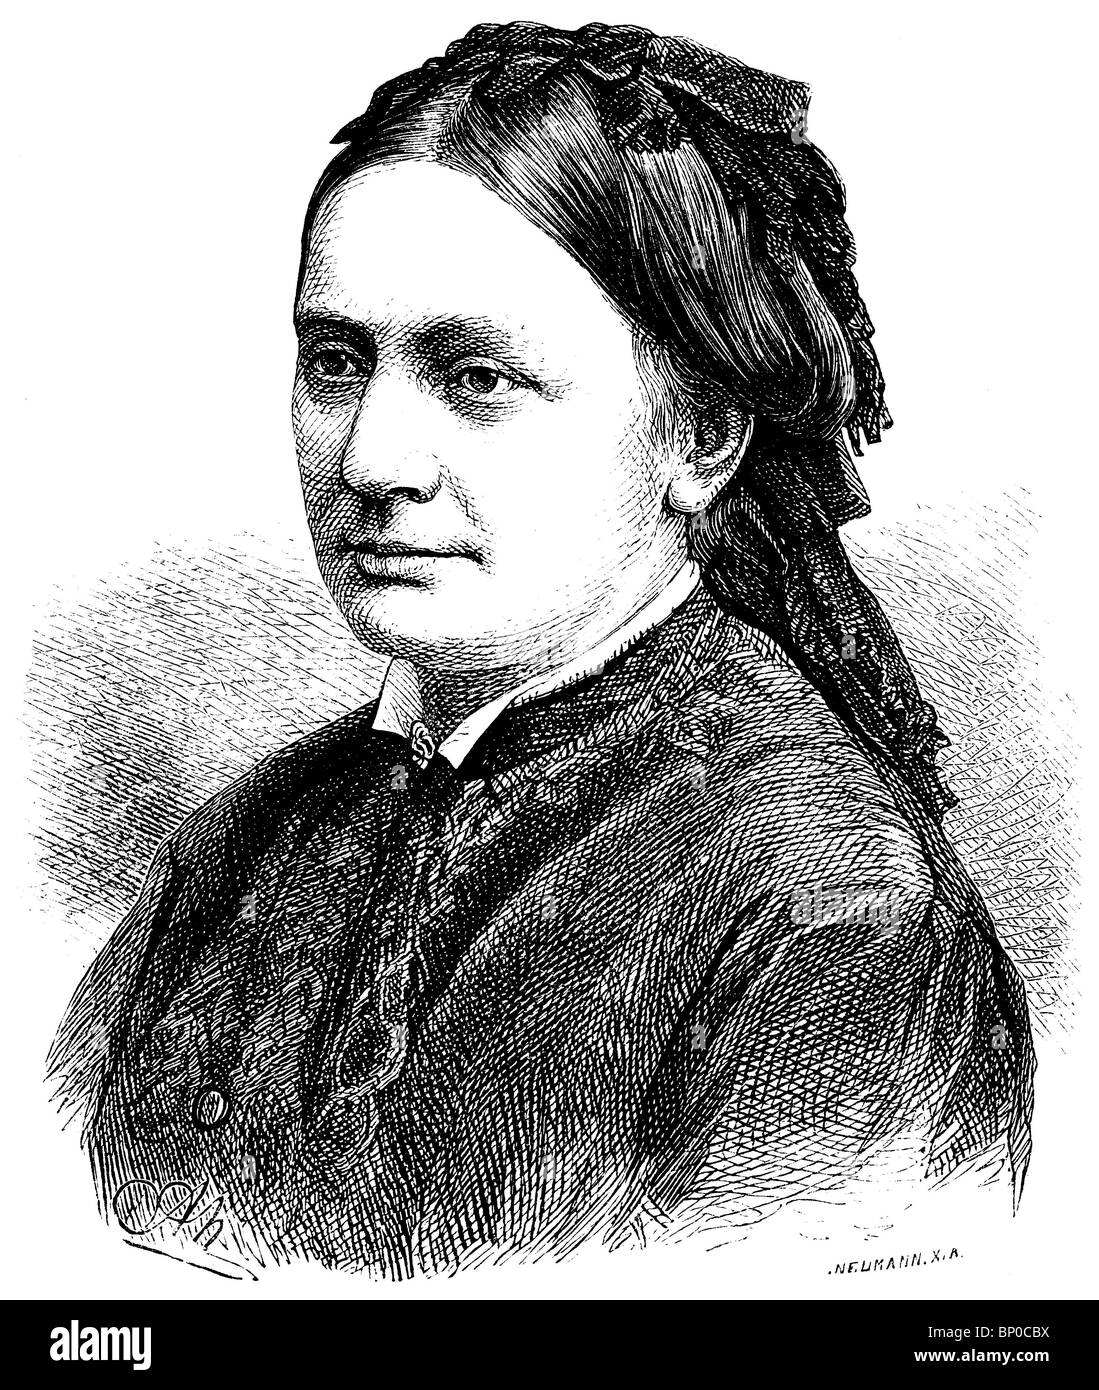 clara weick schumann essay The essay aims to show that the importance of robert schumann for dutch musical life in the 19th century did not primarily consist in the performances of his works, but in the unwavering loyalty with which his friend, the dutch composer johannes verhulst, held on to what he believed to be schumann's ideals, and that verhulst's fanaticism in.